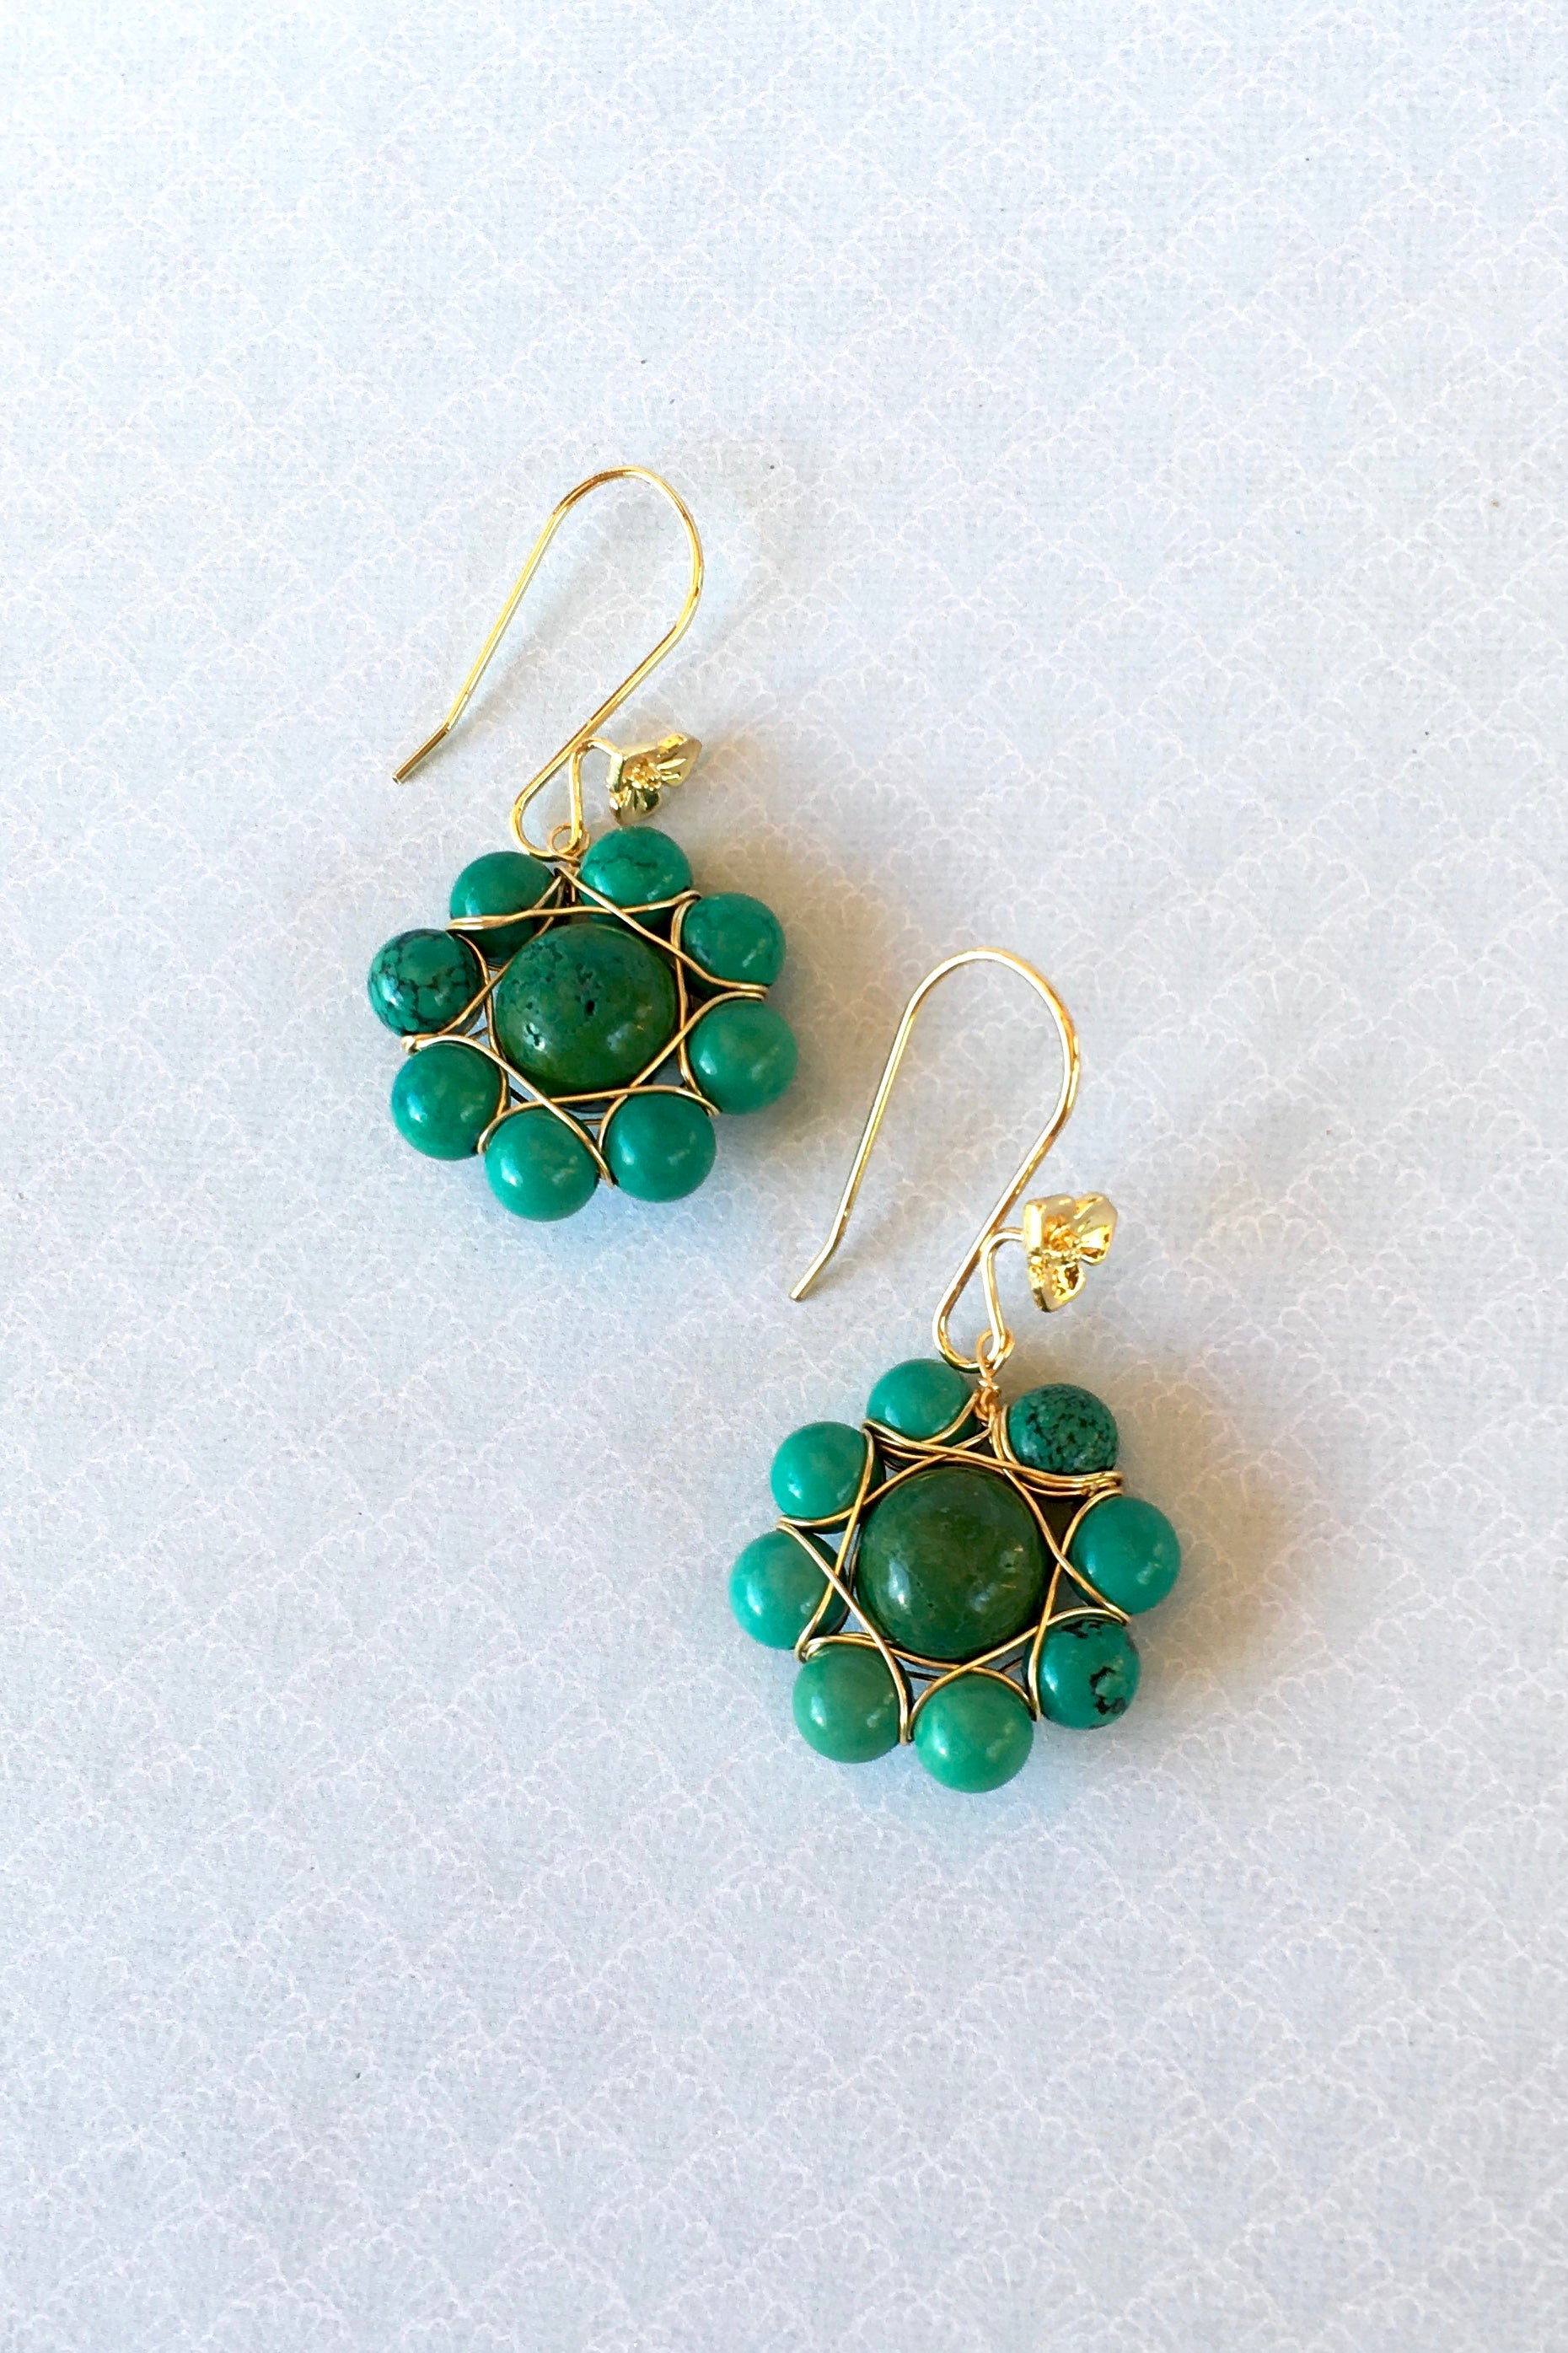 Earrings Greco Turquoise Bead Flower